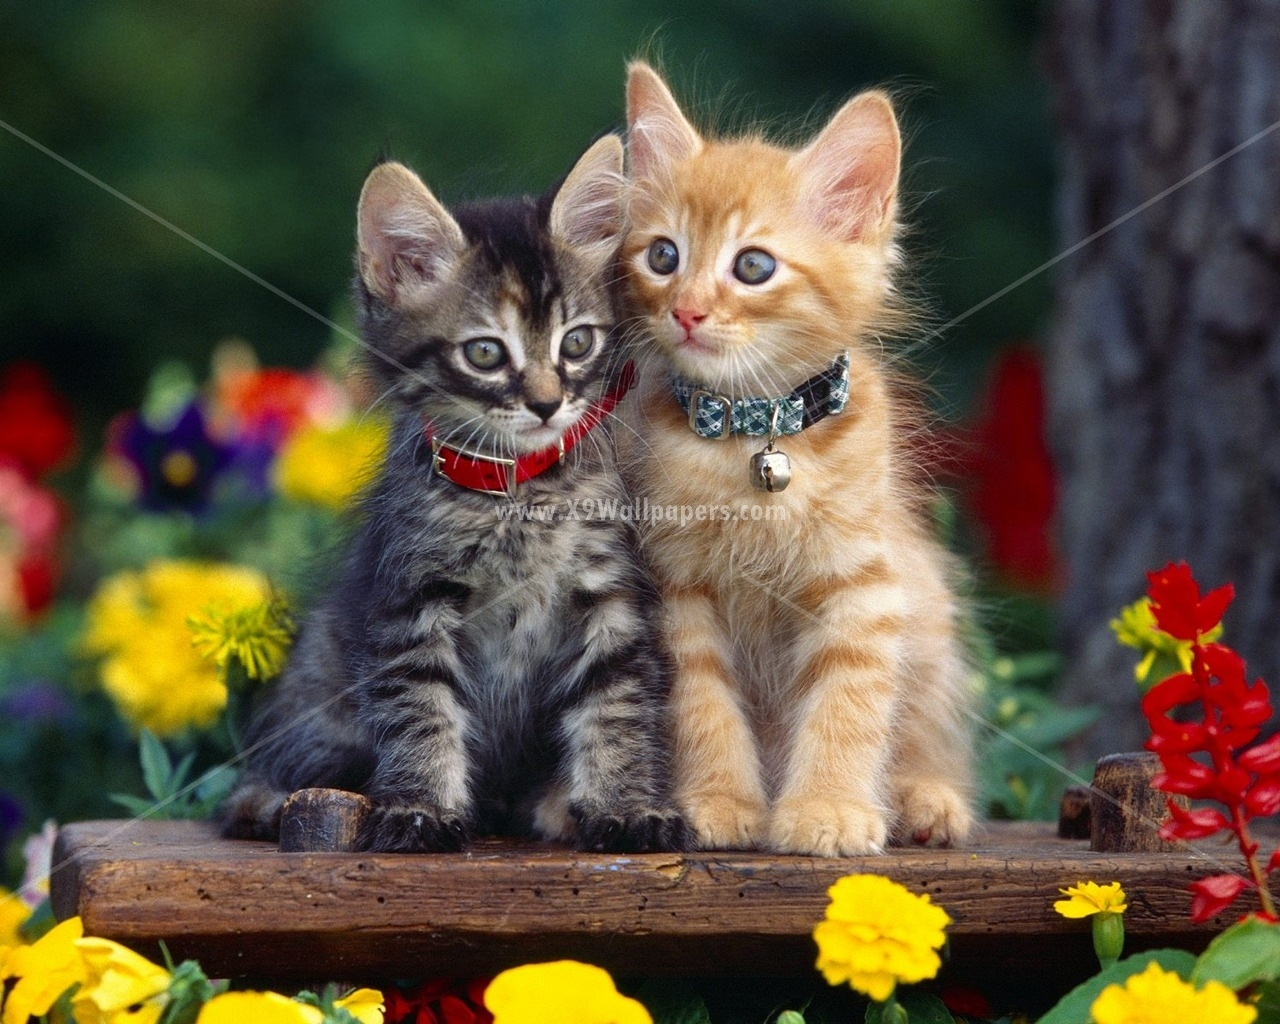 50 Cute and Beautiful Cats and Dogs HD Wallpapers and 1280x1024